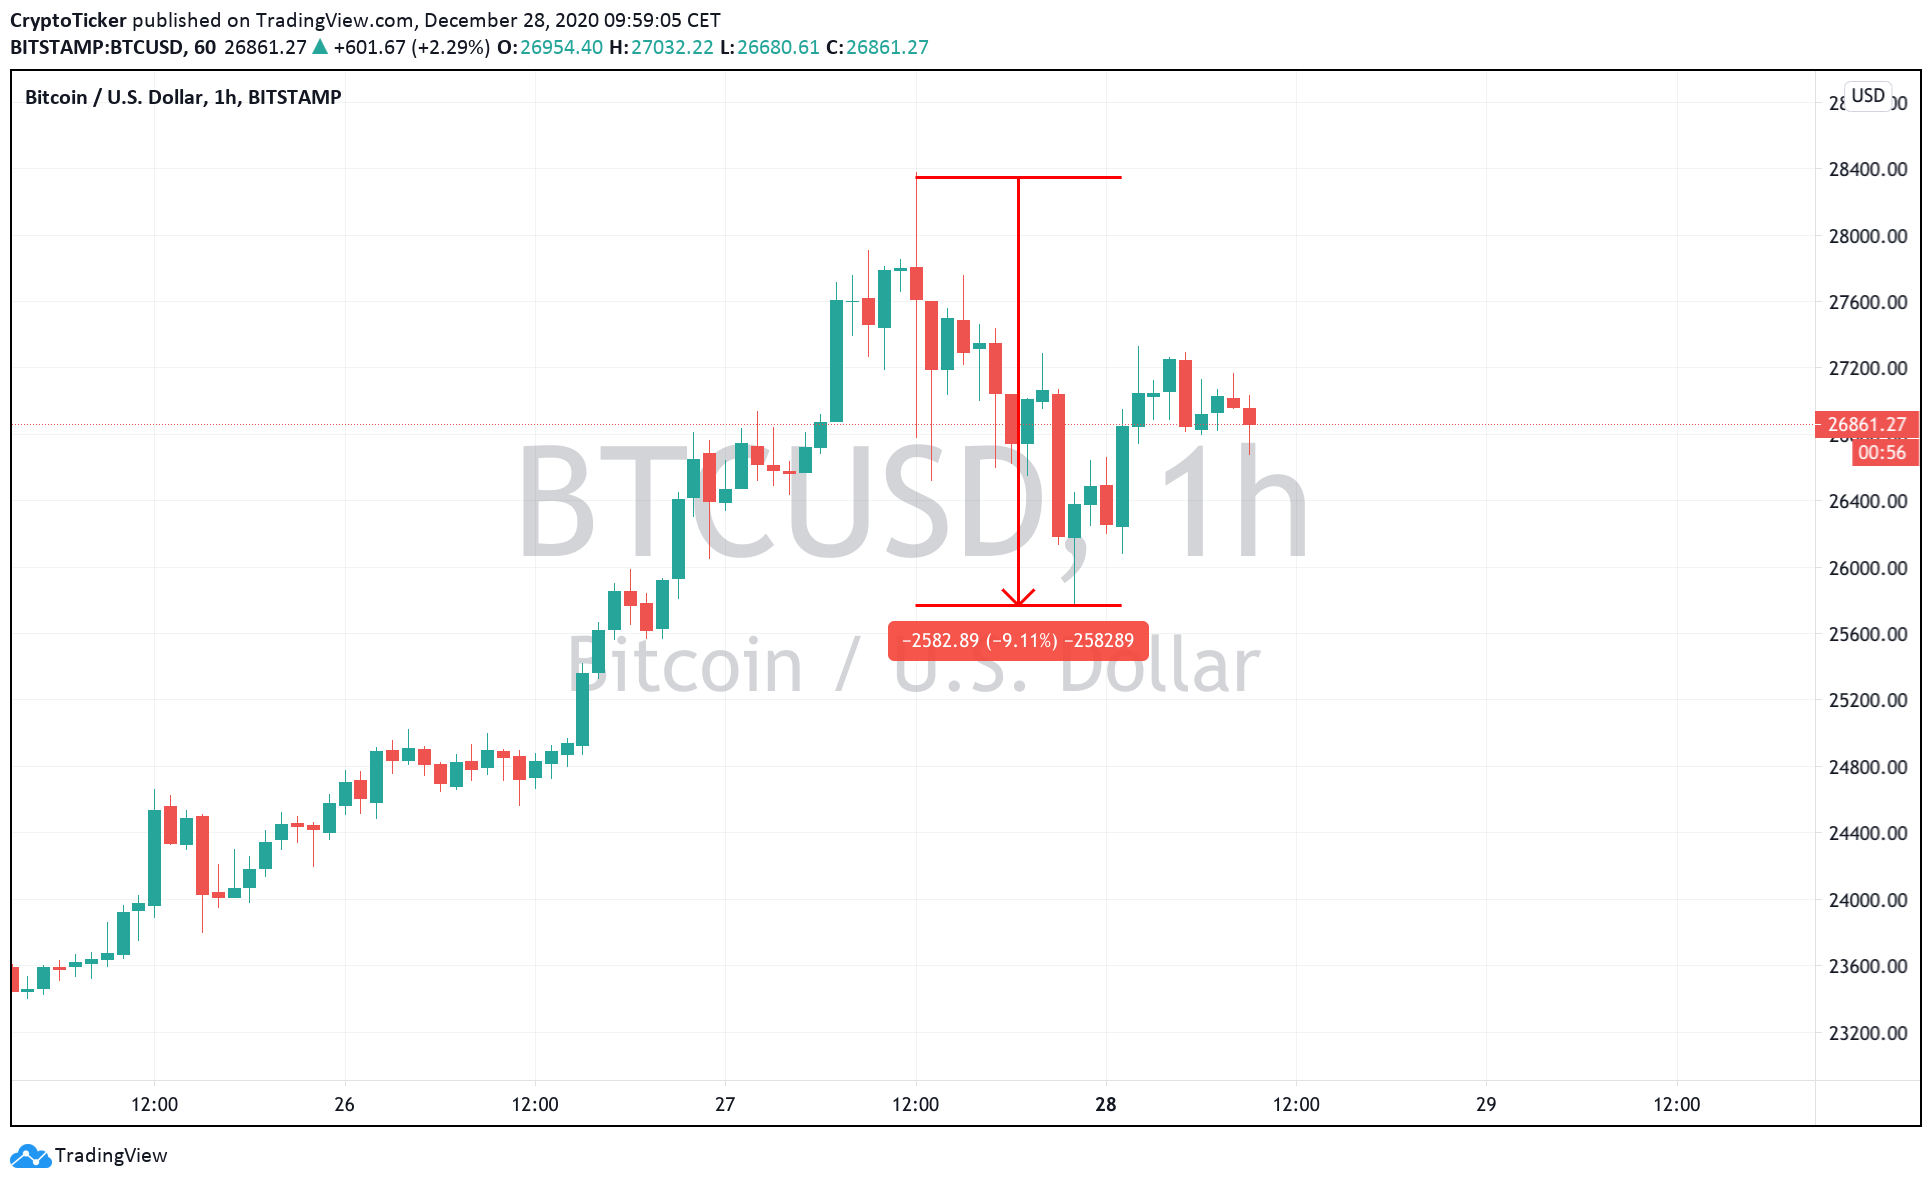 BTC/USD 1-Hour chart, showing a retracement from the all-time high